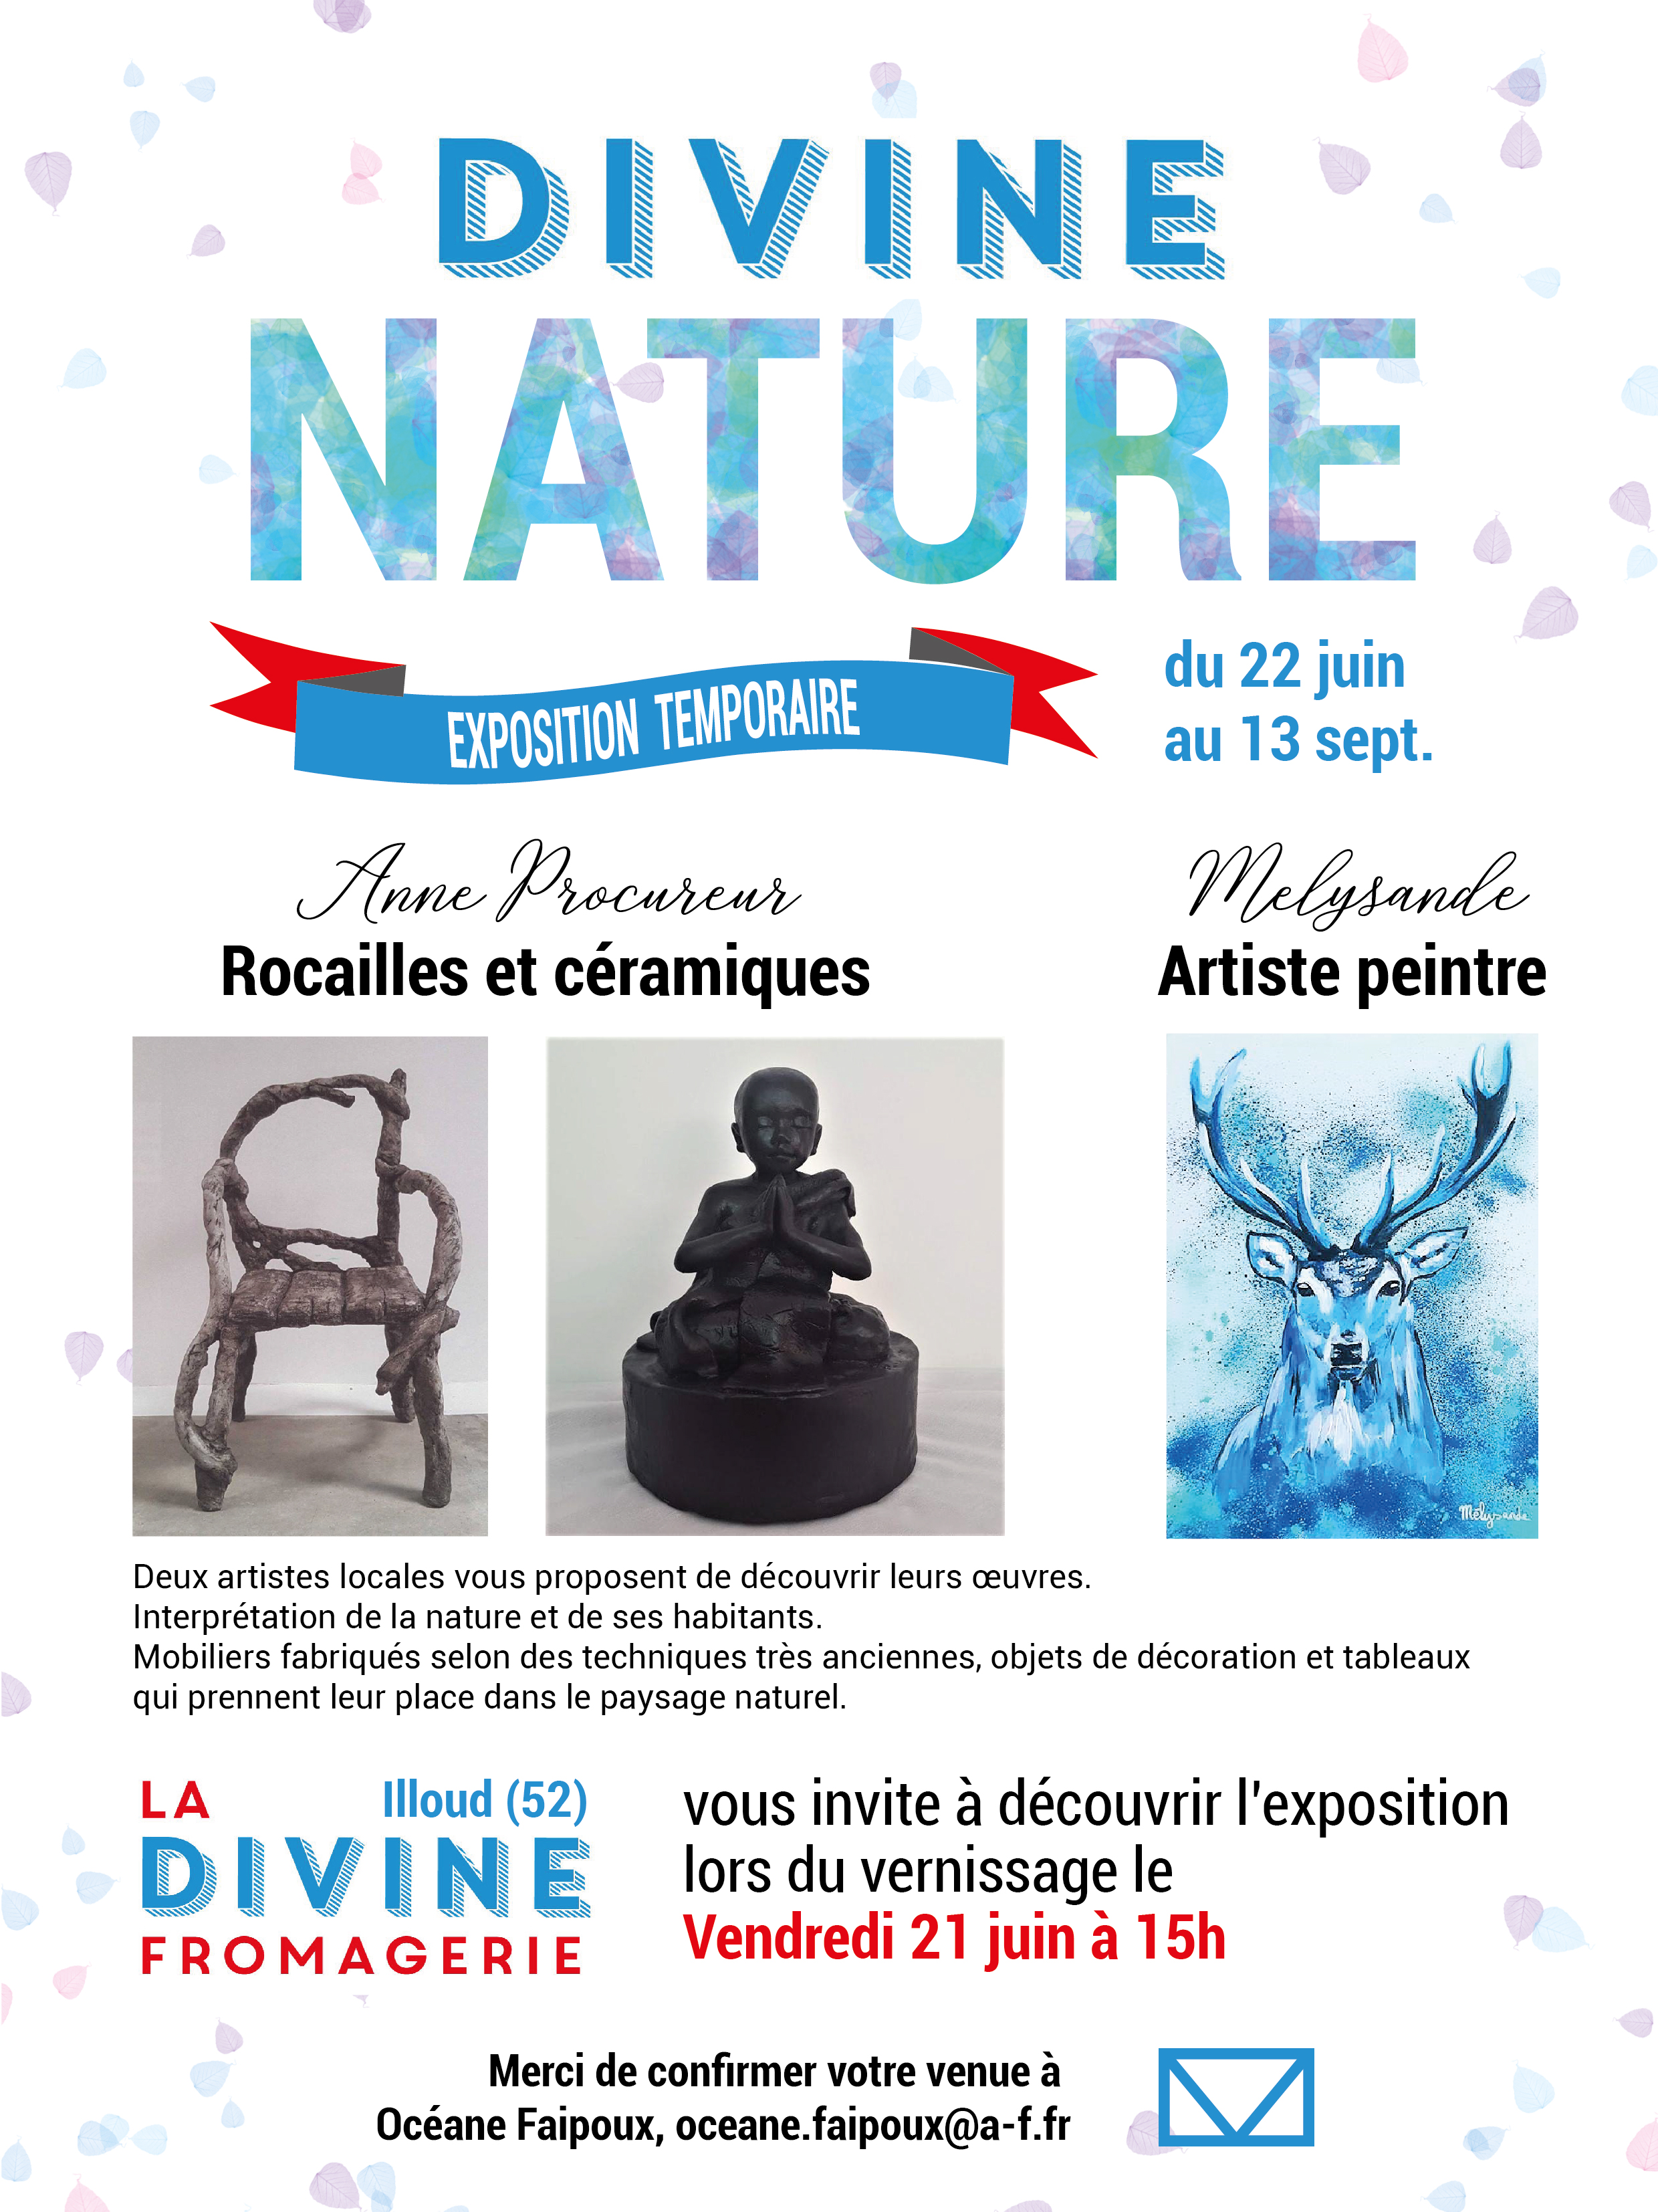 Exposition Divine fromagerie